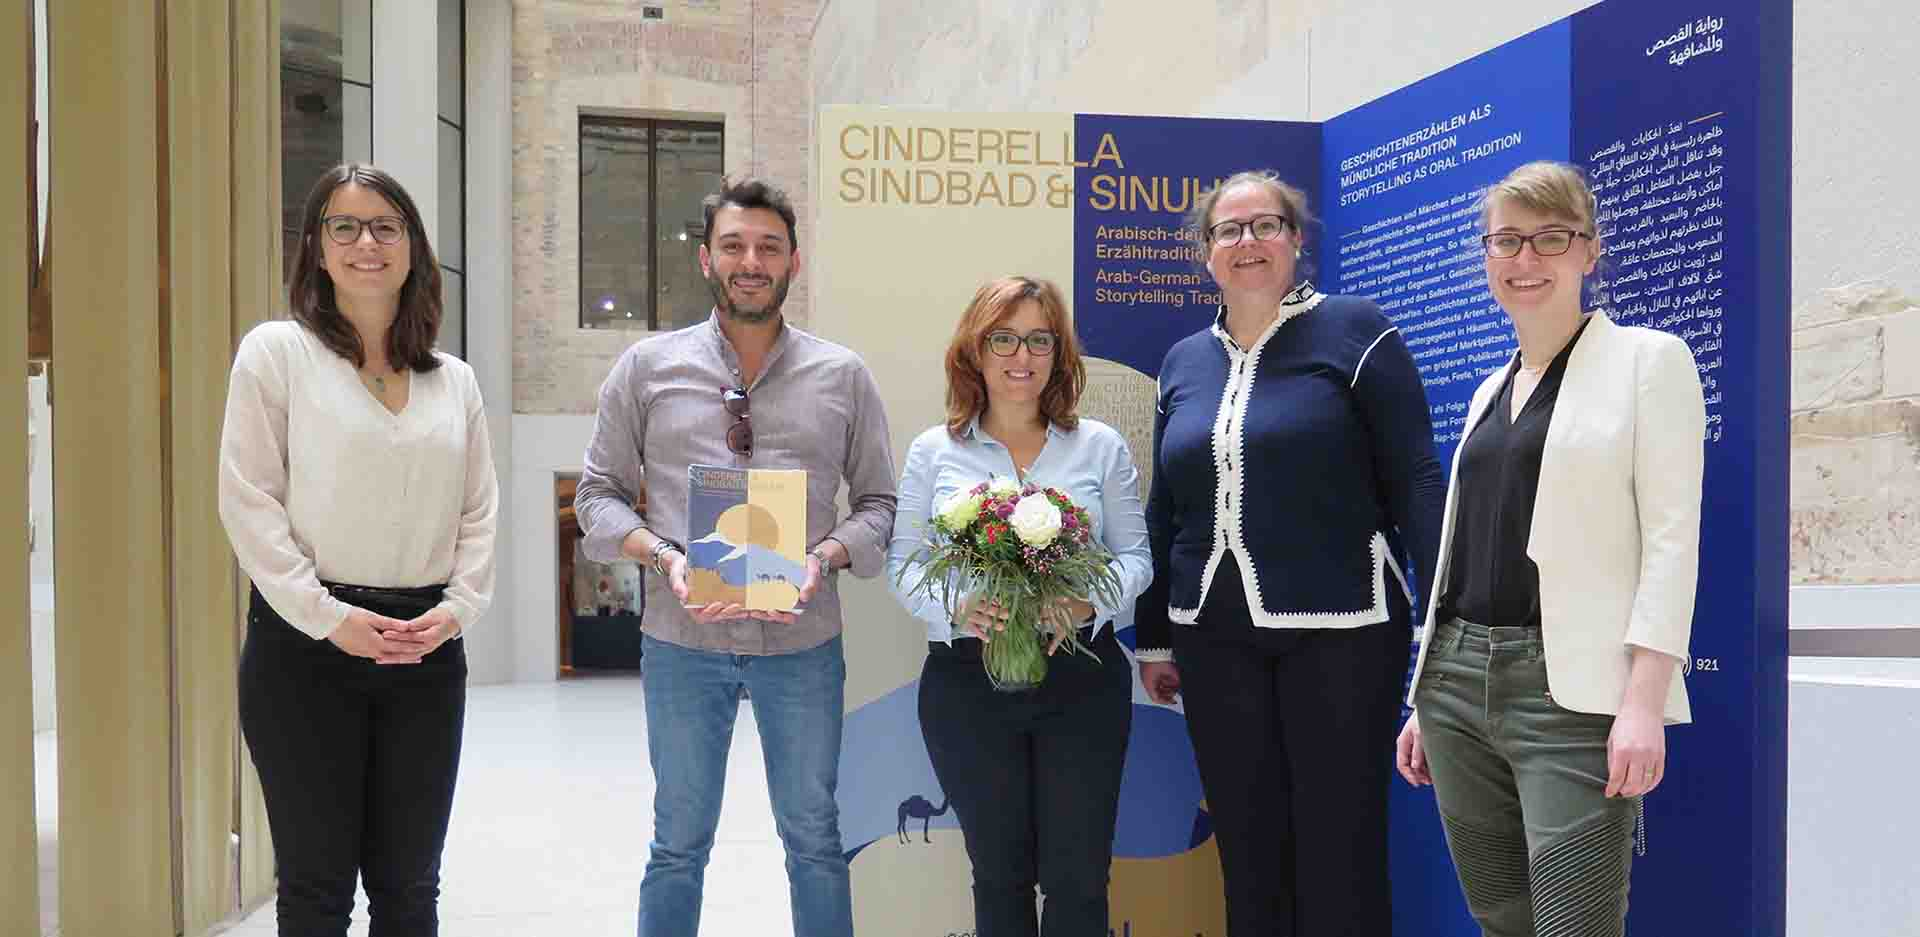 100,000th Visitor Views 'Cinderella, Sindbad & Sinuhe' at the Neues Museum